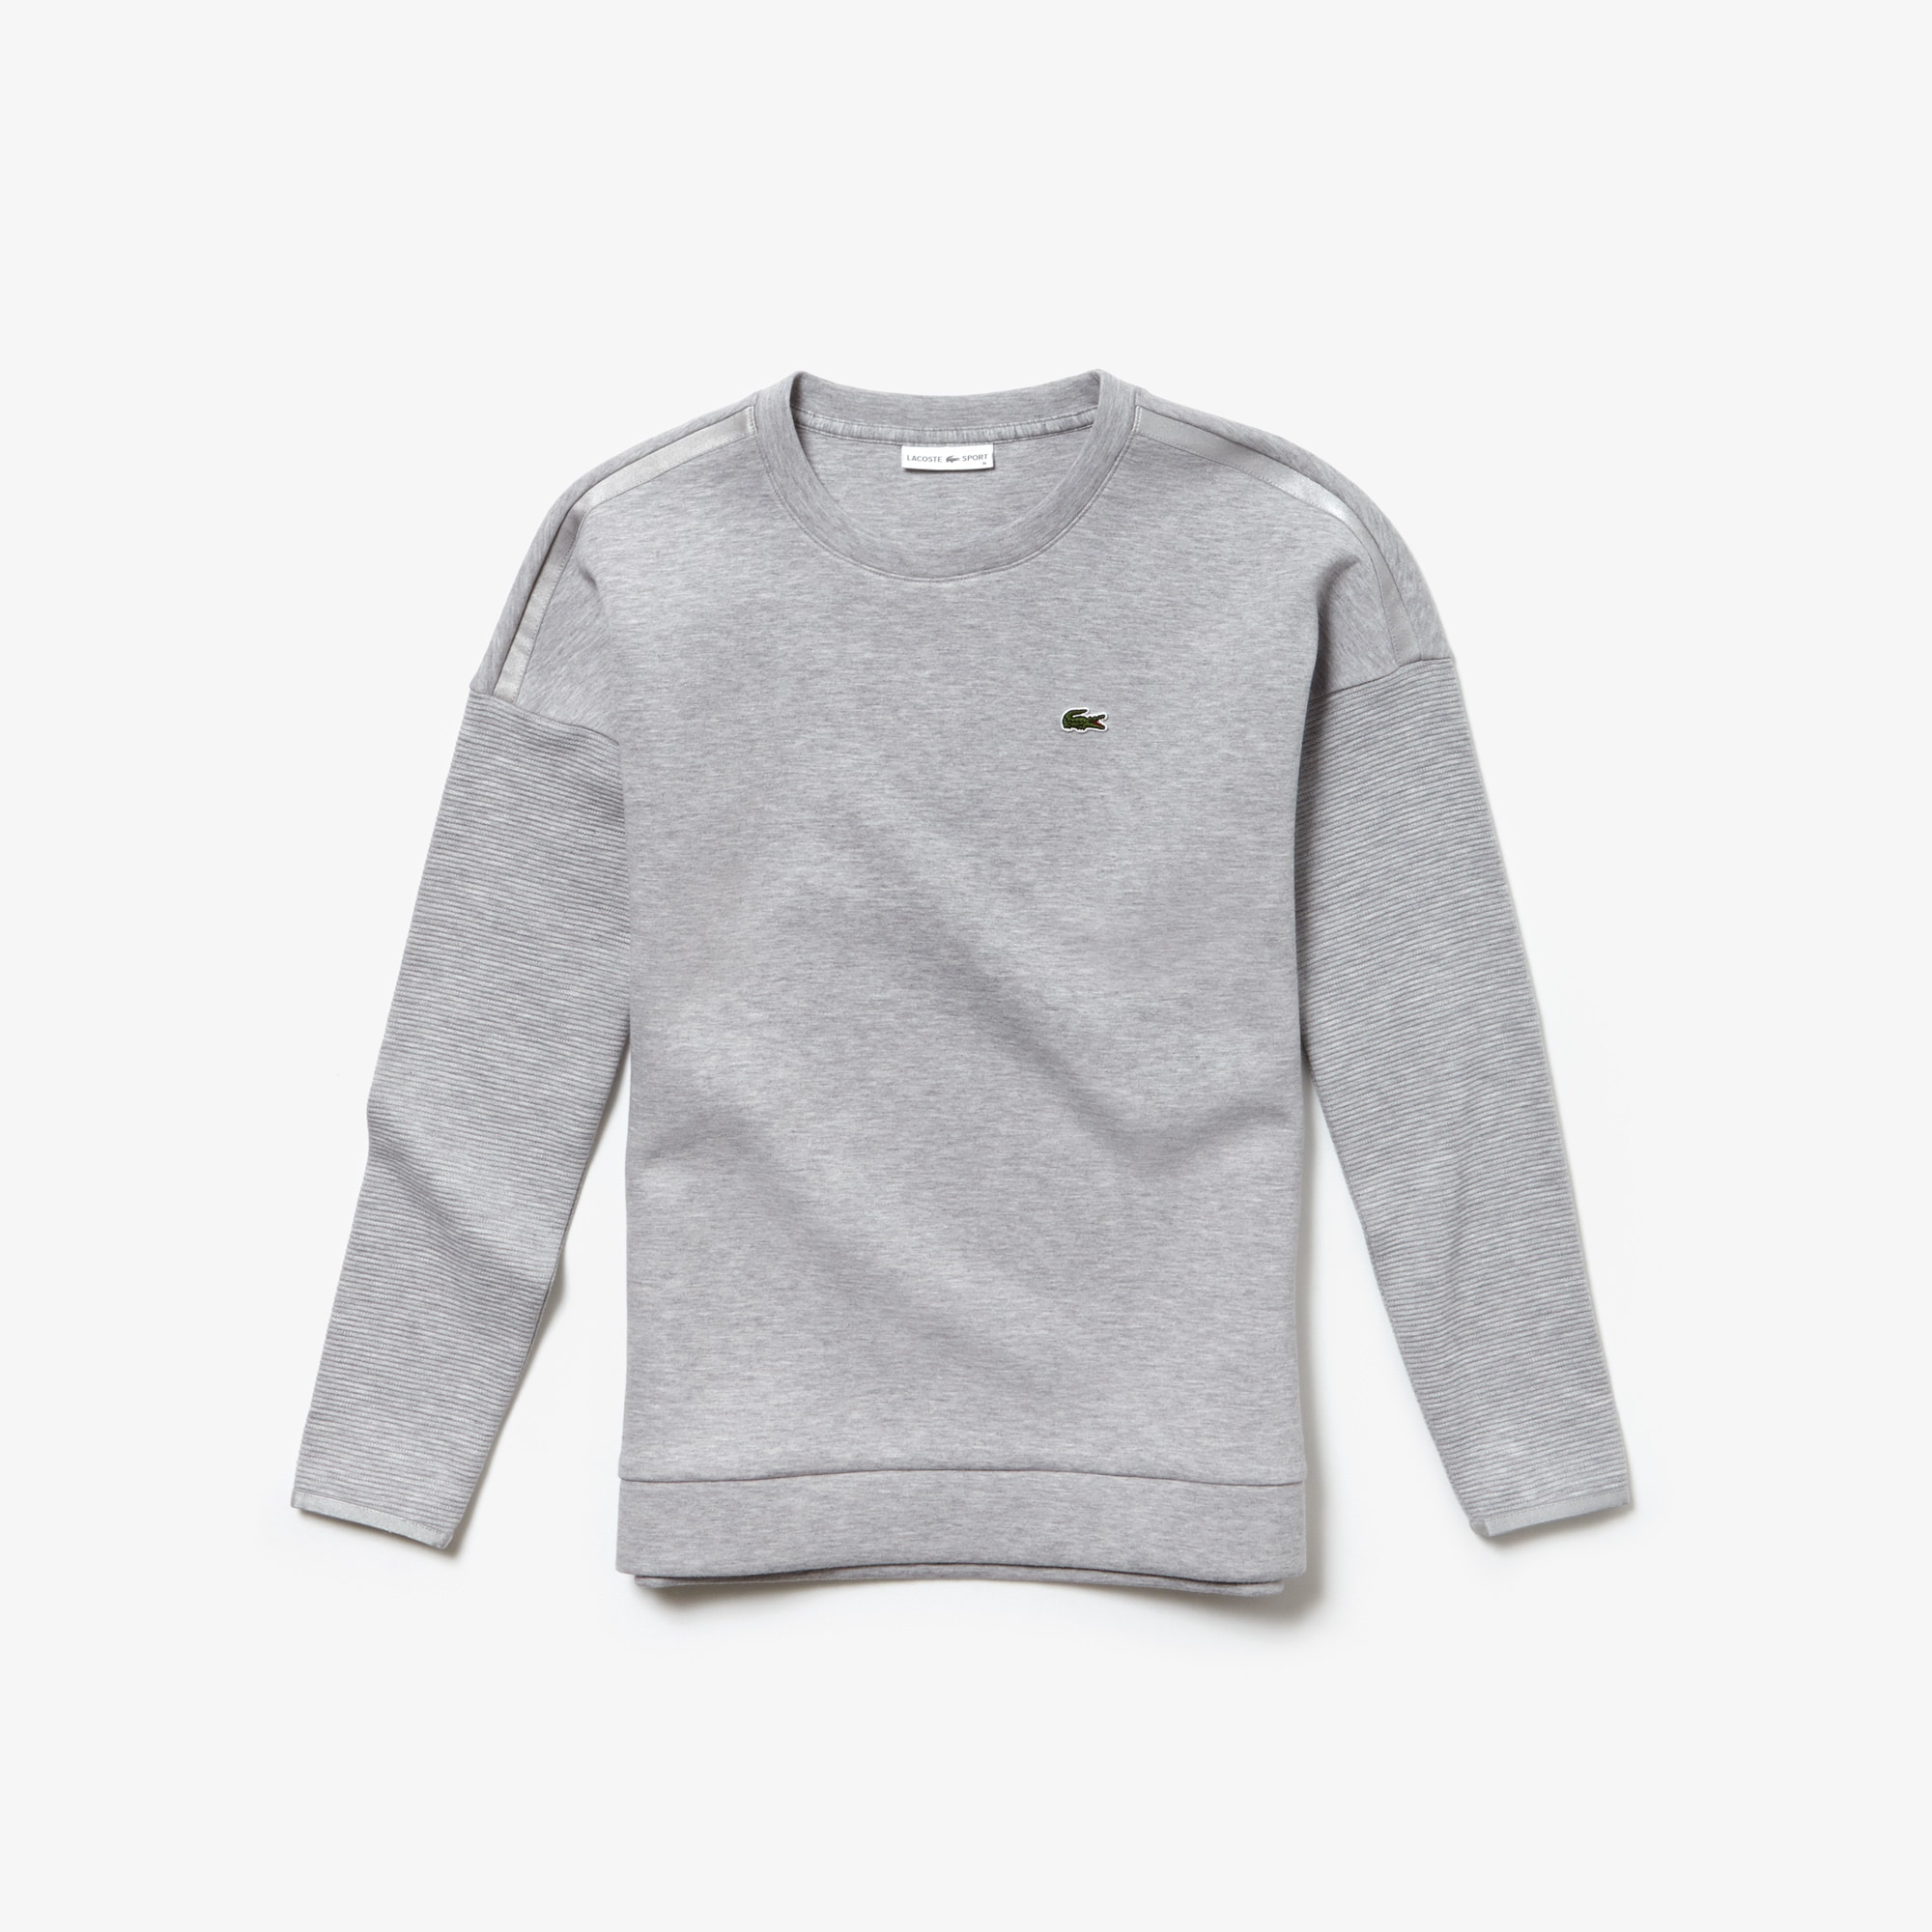 Women's Lacoste SPORT Crew Neck Flecked Fleece Tennis Sweatshirt